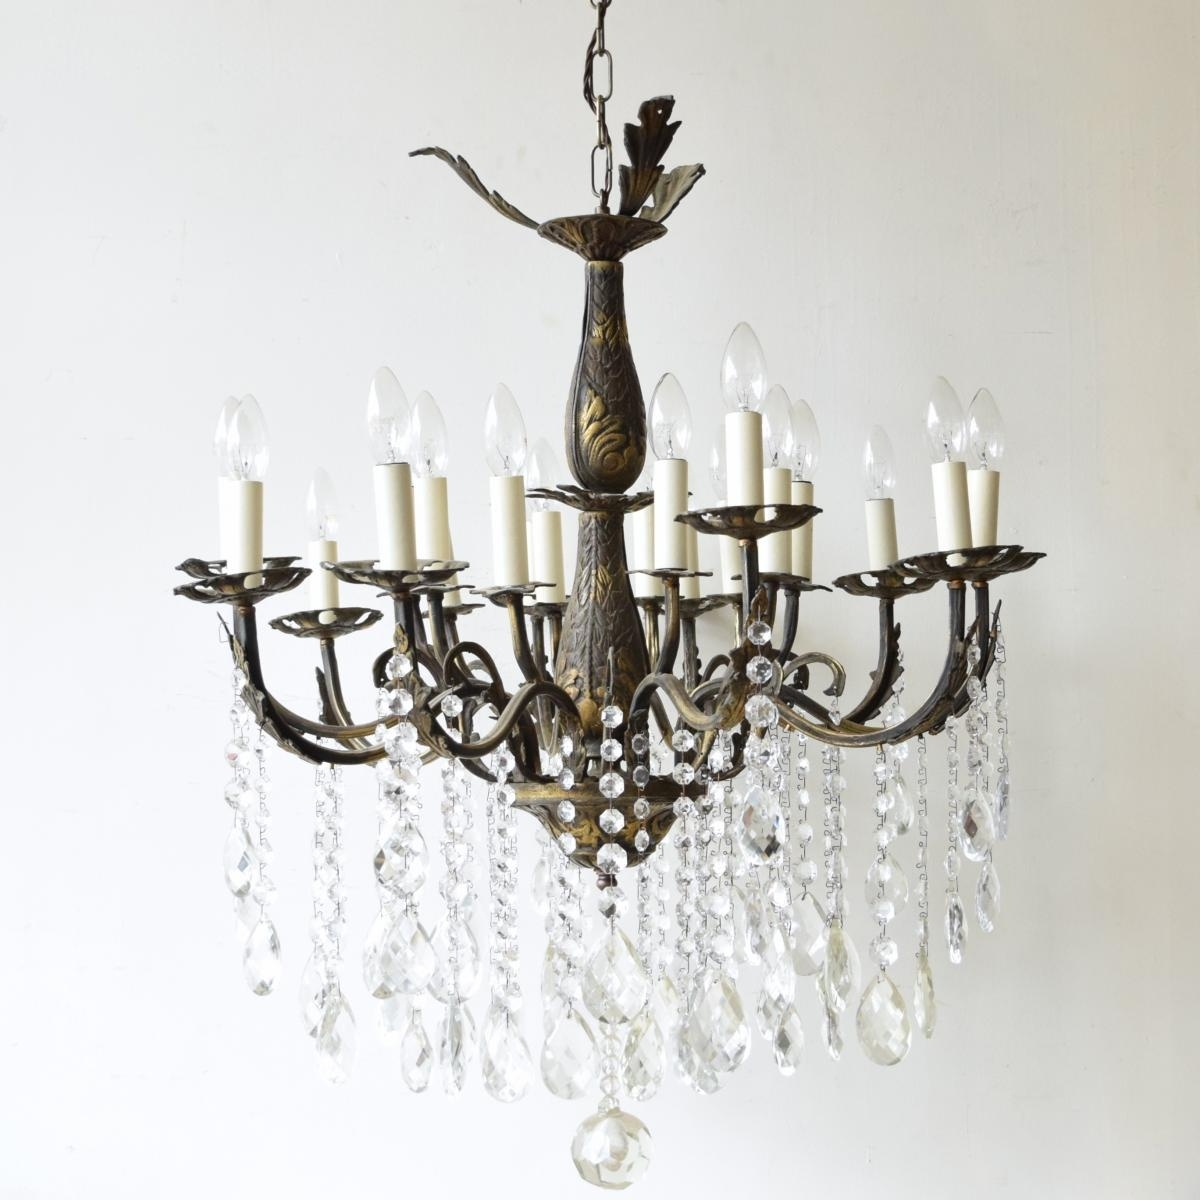 Large Vintage French 16 Light Brass Chandelier For Sale At Pamono For Most Up To Date Large Brass Chandelier (View 12 of 20)